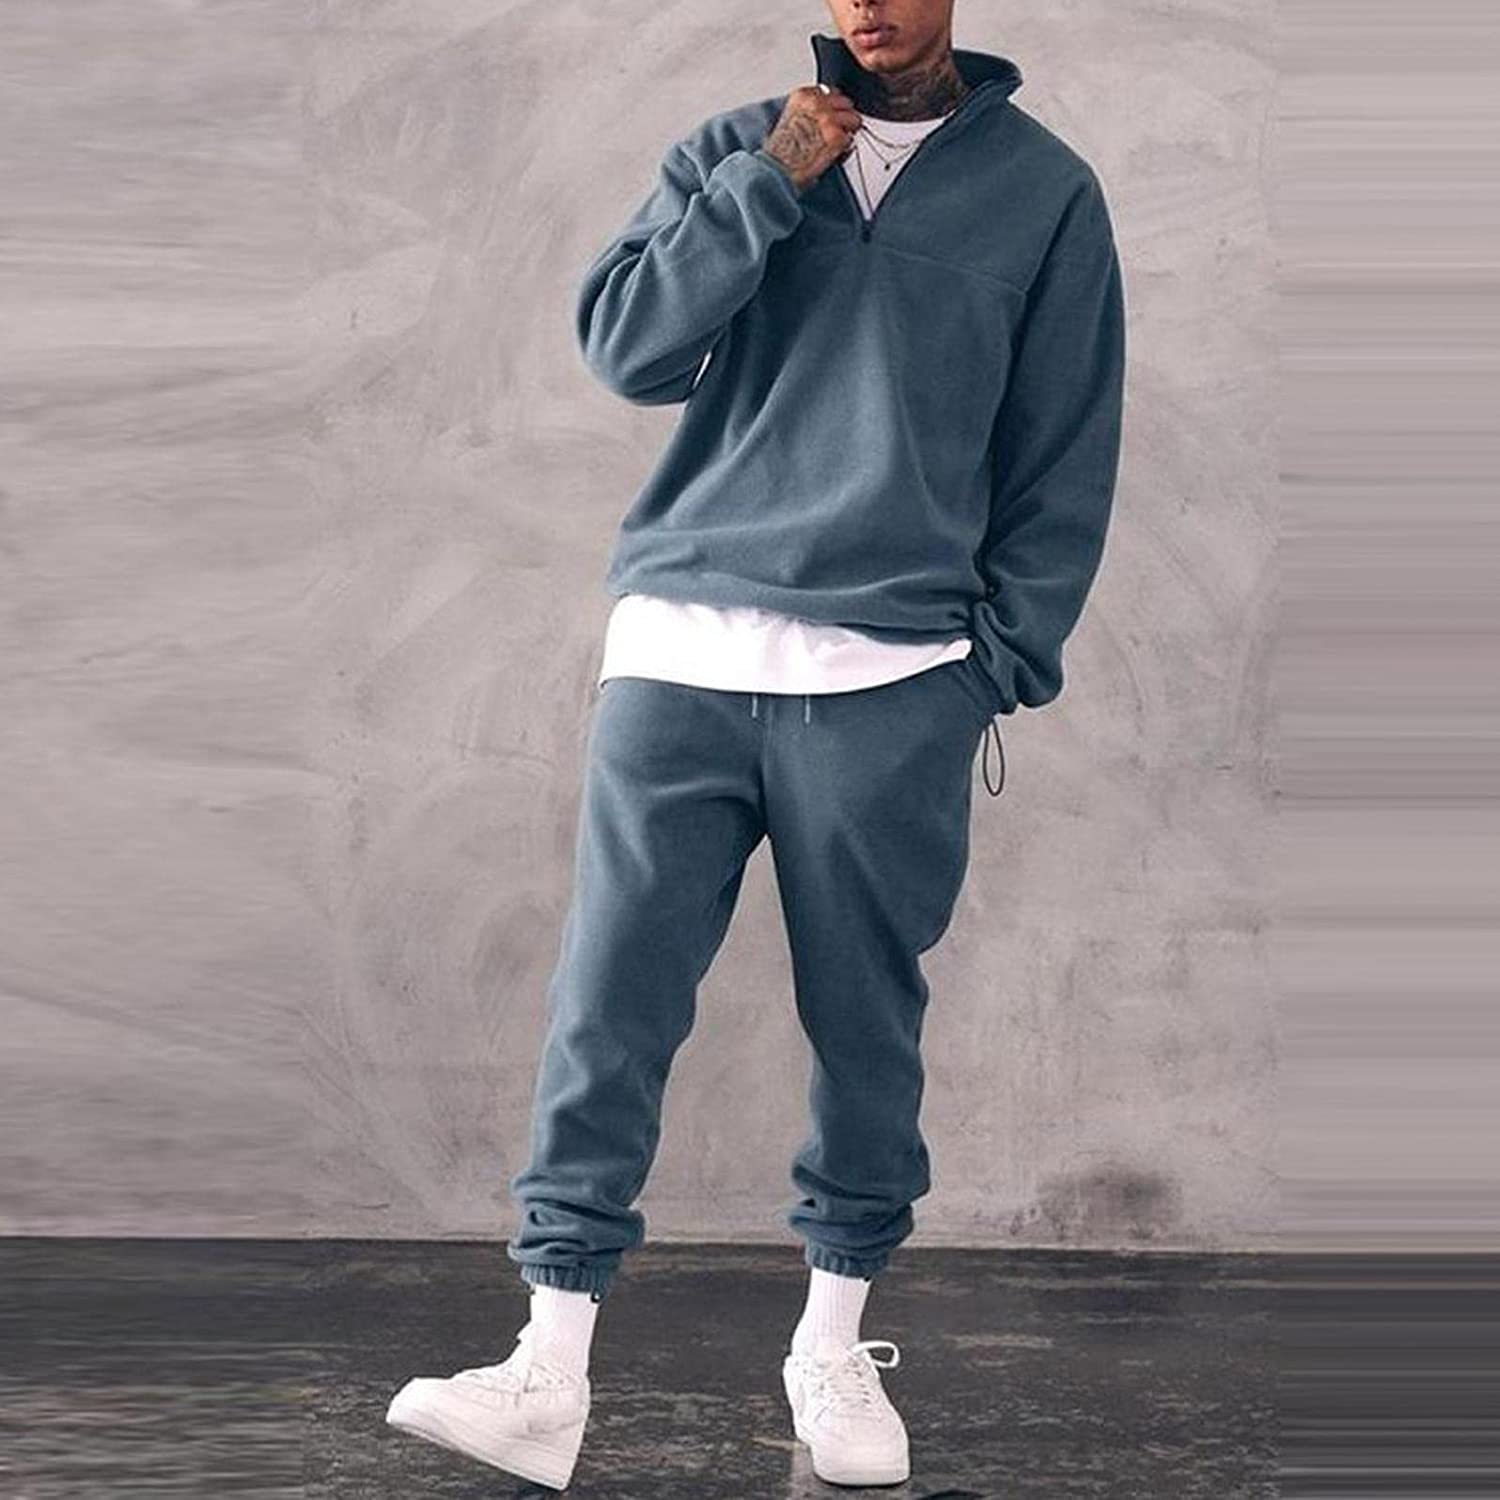 WoCoo Men's 2 Piece Tracksuits Stand Collar Zipper Pullover Sweater & Long Pants Outfit Soft Comfy Fuzzy Fleece Home Suit